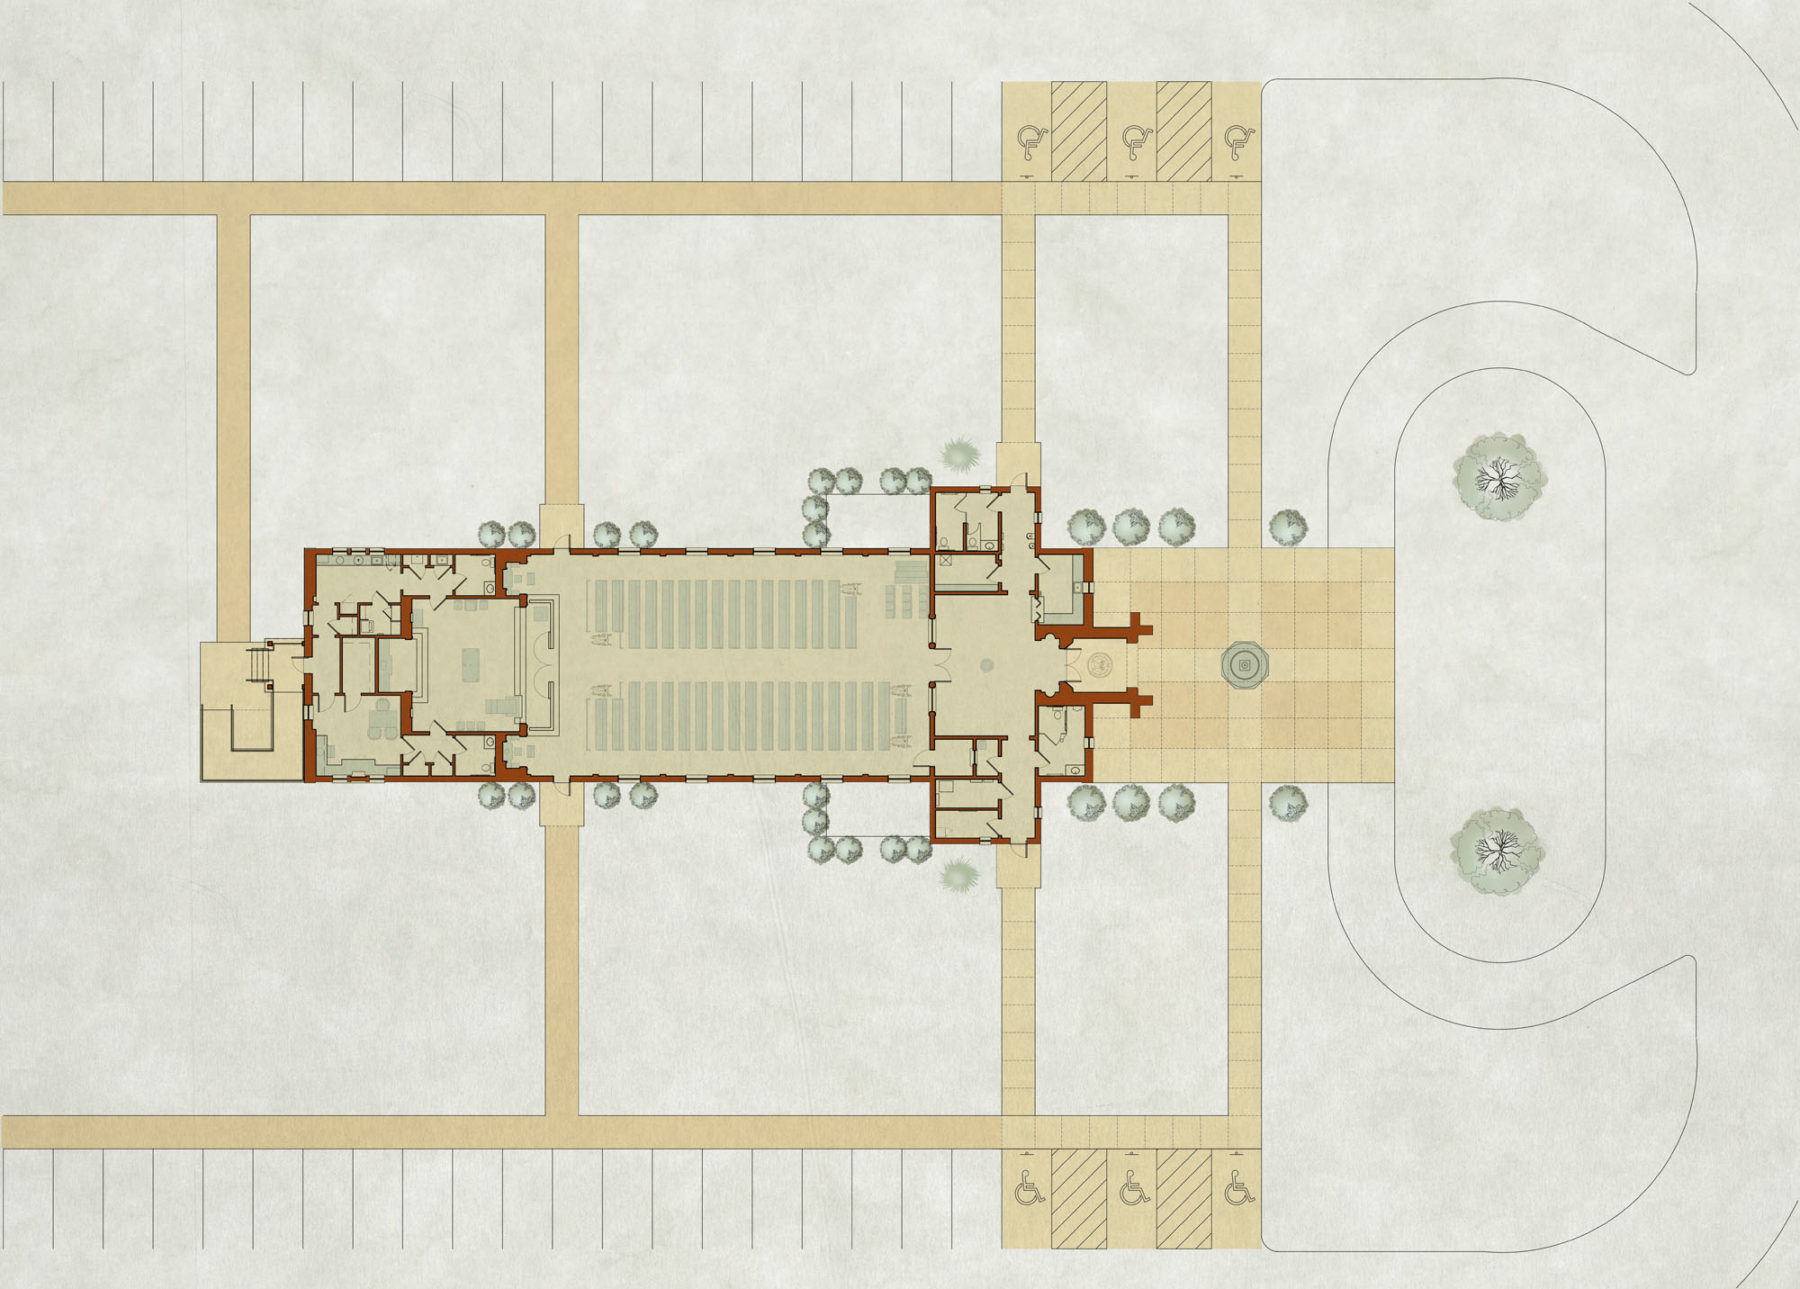 Master site plan rendering plaza catholic church architecture nave narthex and sanctuary with altar rail by Harrison Design